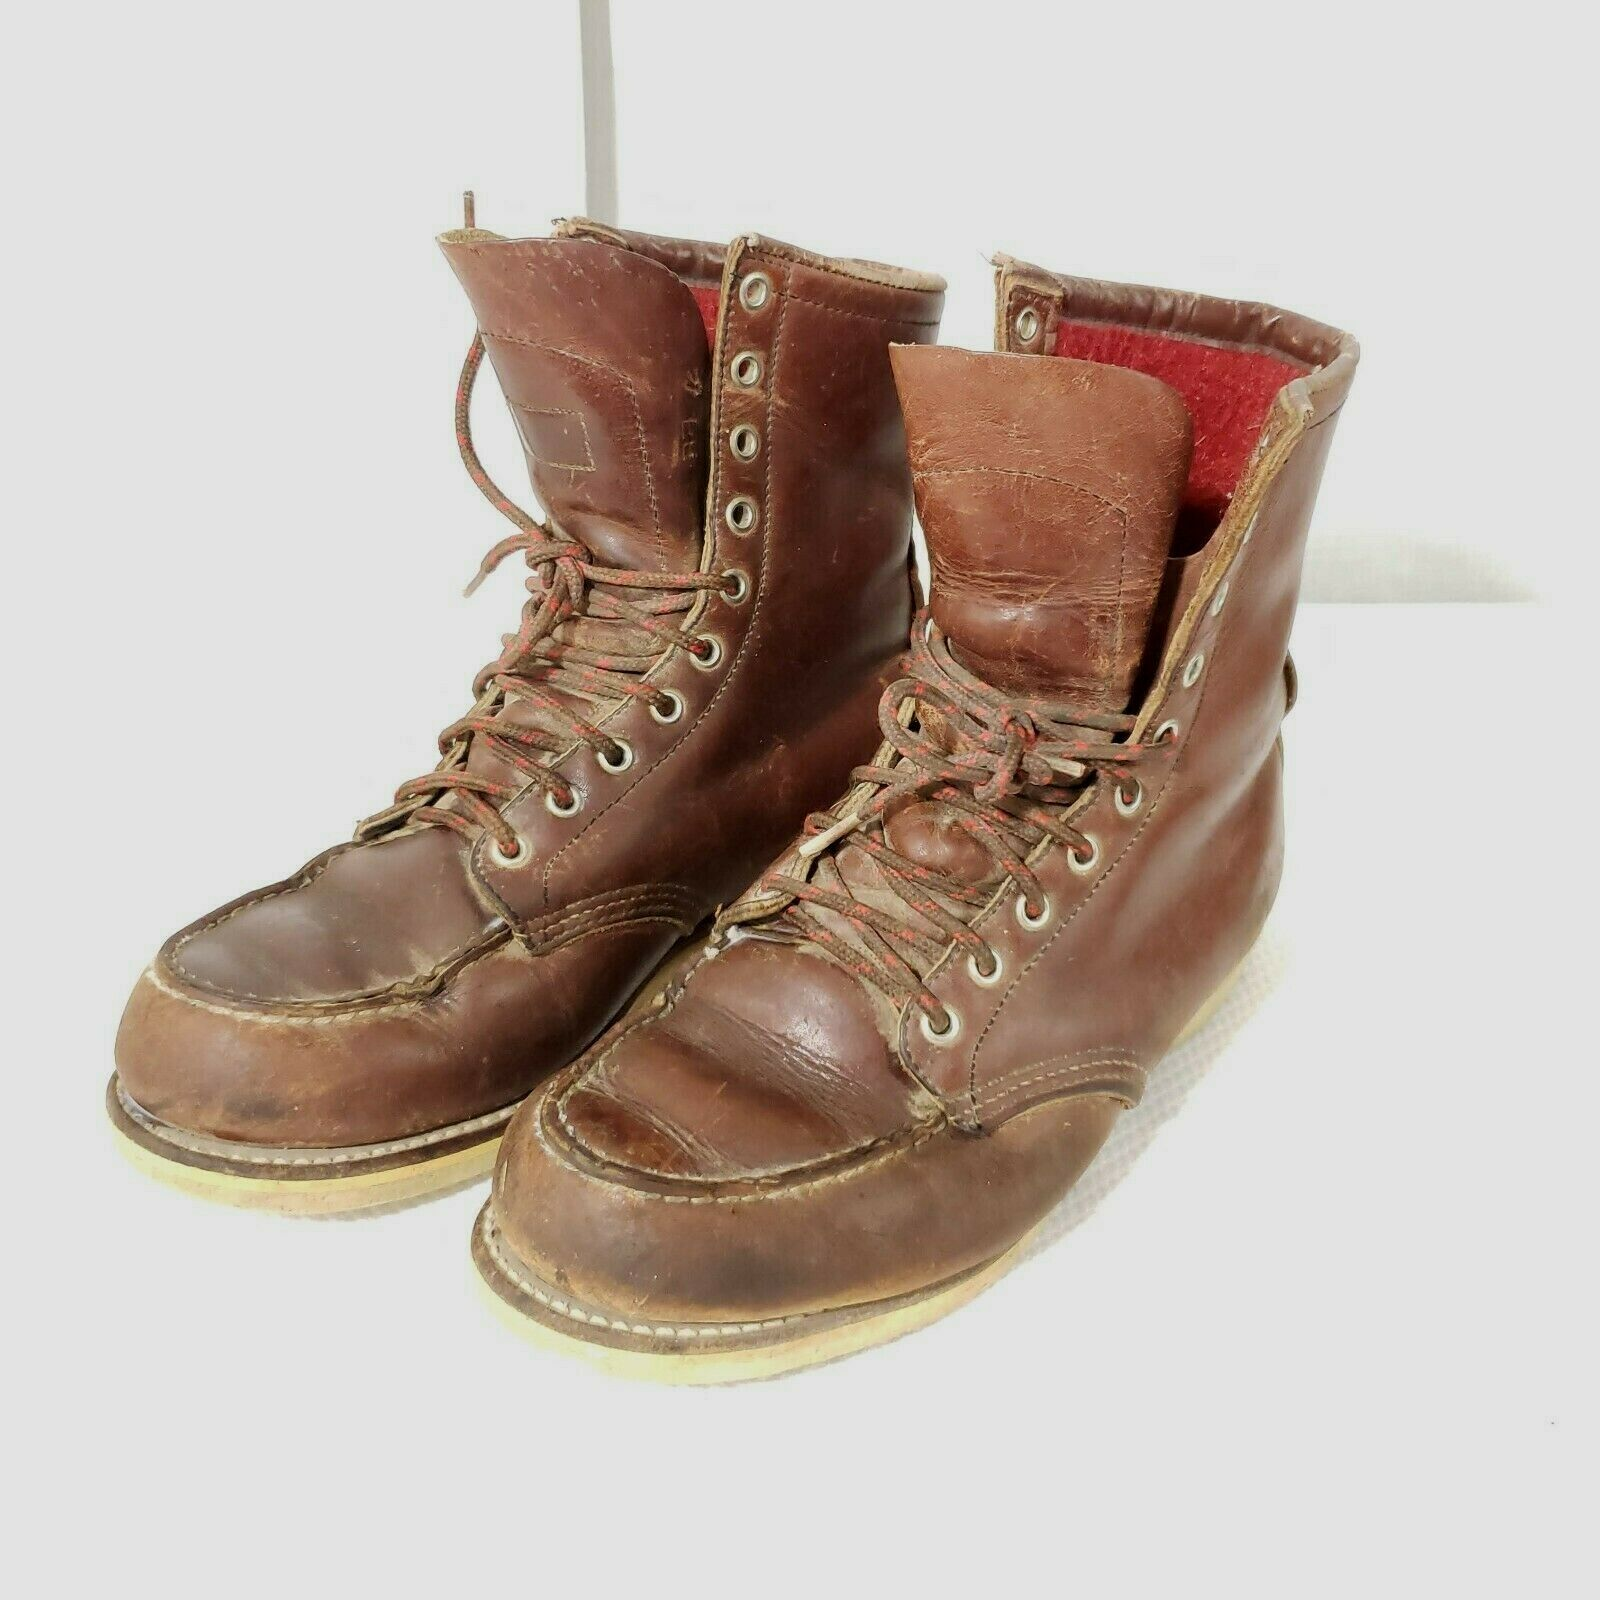 Vintage 60s Red Wing Boots 8.5 Moc Toe Red Wool Lined Crepe Sole USA Made